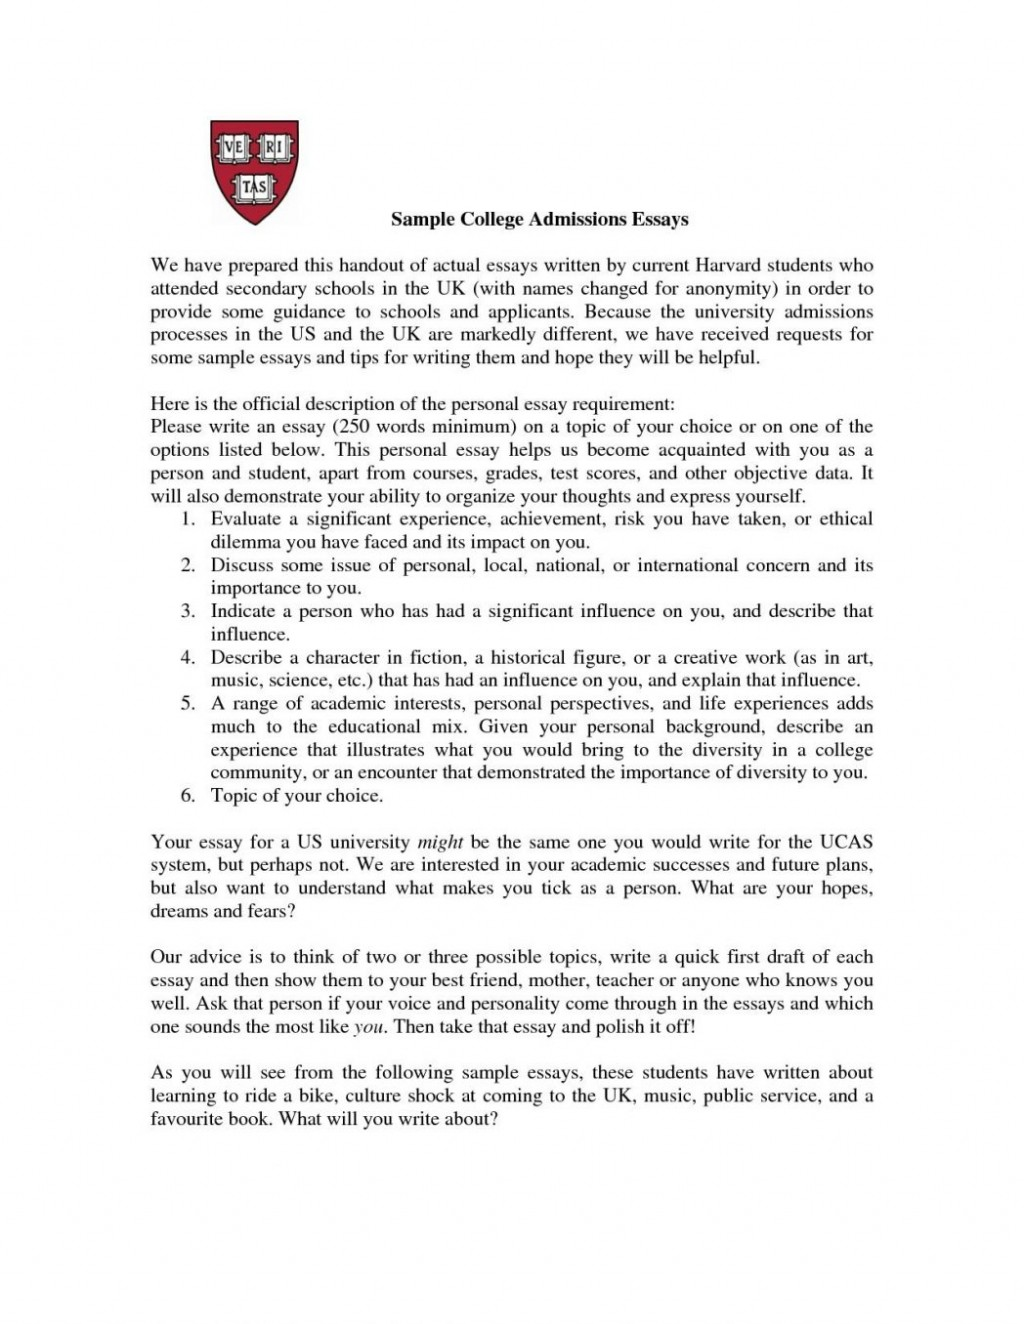 003 Common App Essays That Worked Harvard Essay Example Template Design College Examples Collection Of Free Application Transfer Topic Inside Words Writing Workshop Phenomenal Large